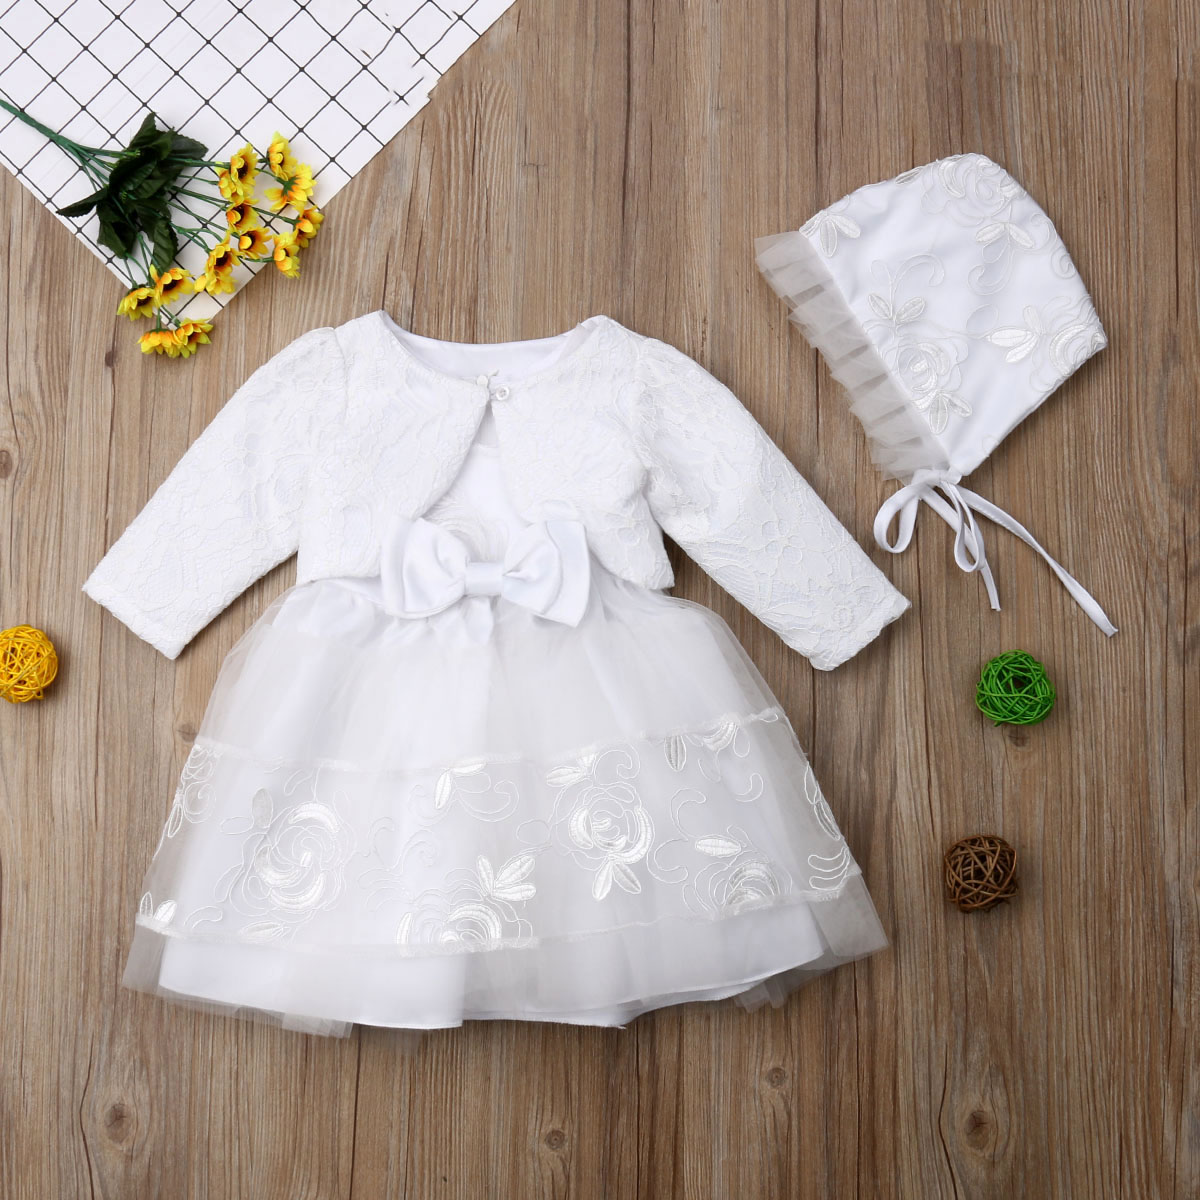 New Lace Baptism Flower Baby Girls Dress Christening Wedding Party Kids Clothes